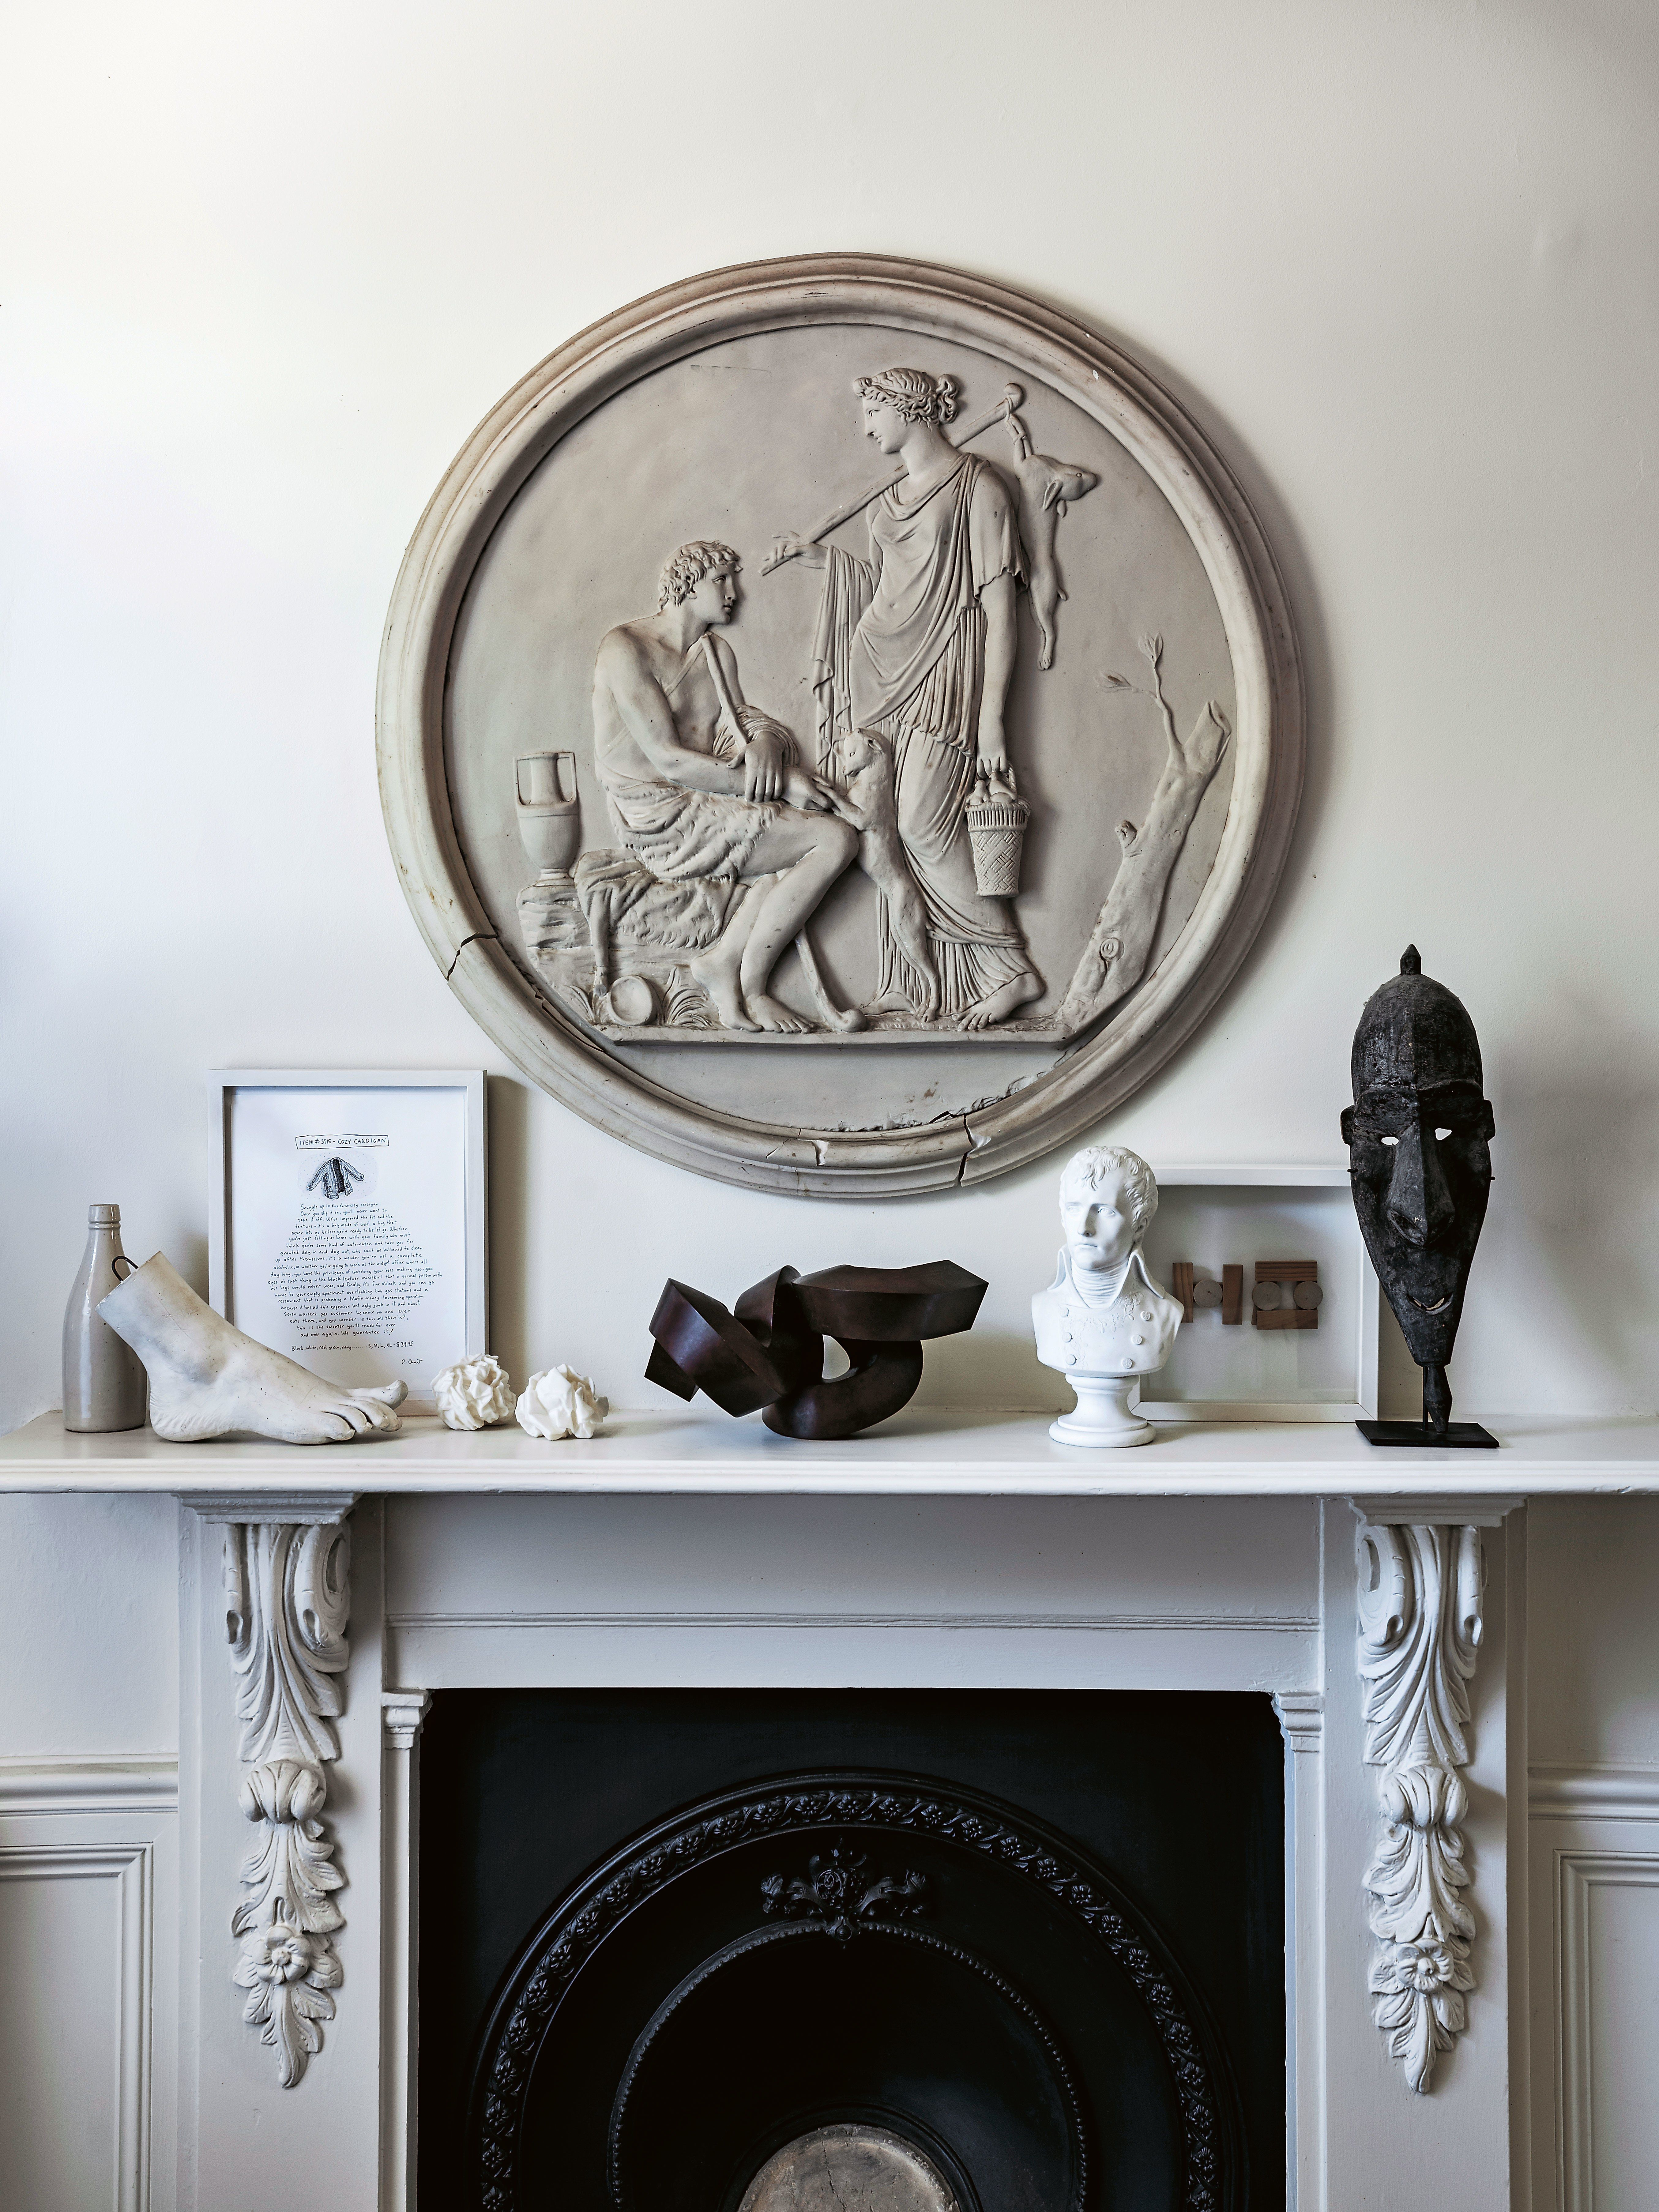 How to Decorate with Soul is part of Mantle decor Photos - Australian lifestyle editor and architecture buff Karen McCartney shares her design insights in a new book The Alchemy of Things